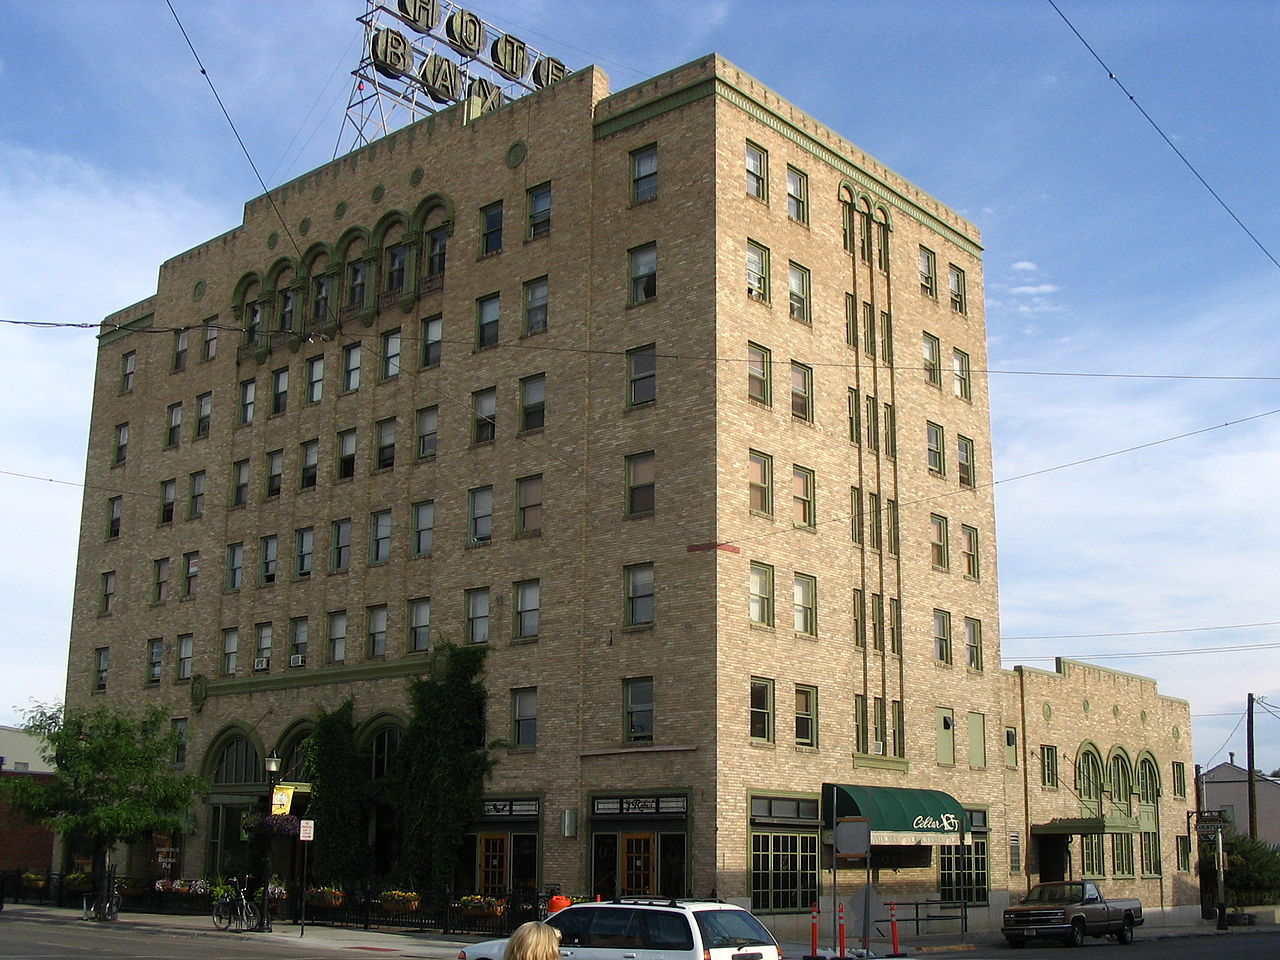 The Baxter Hotel was built in 1929. It is an excellent example of Art Deco architecture.